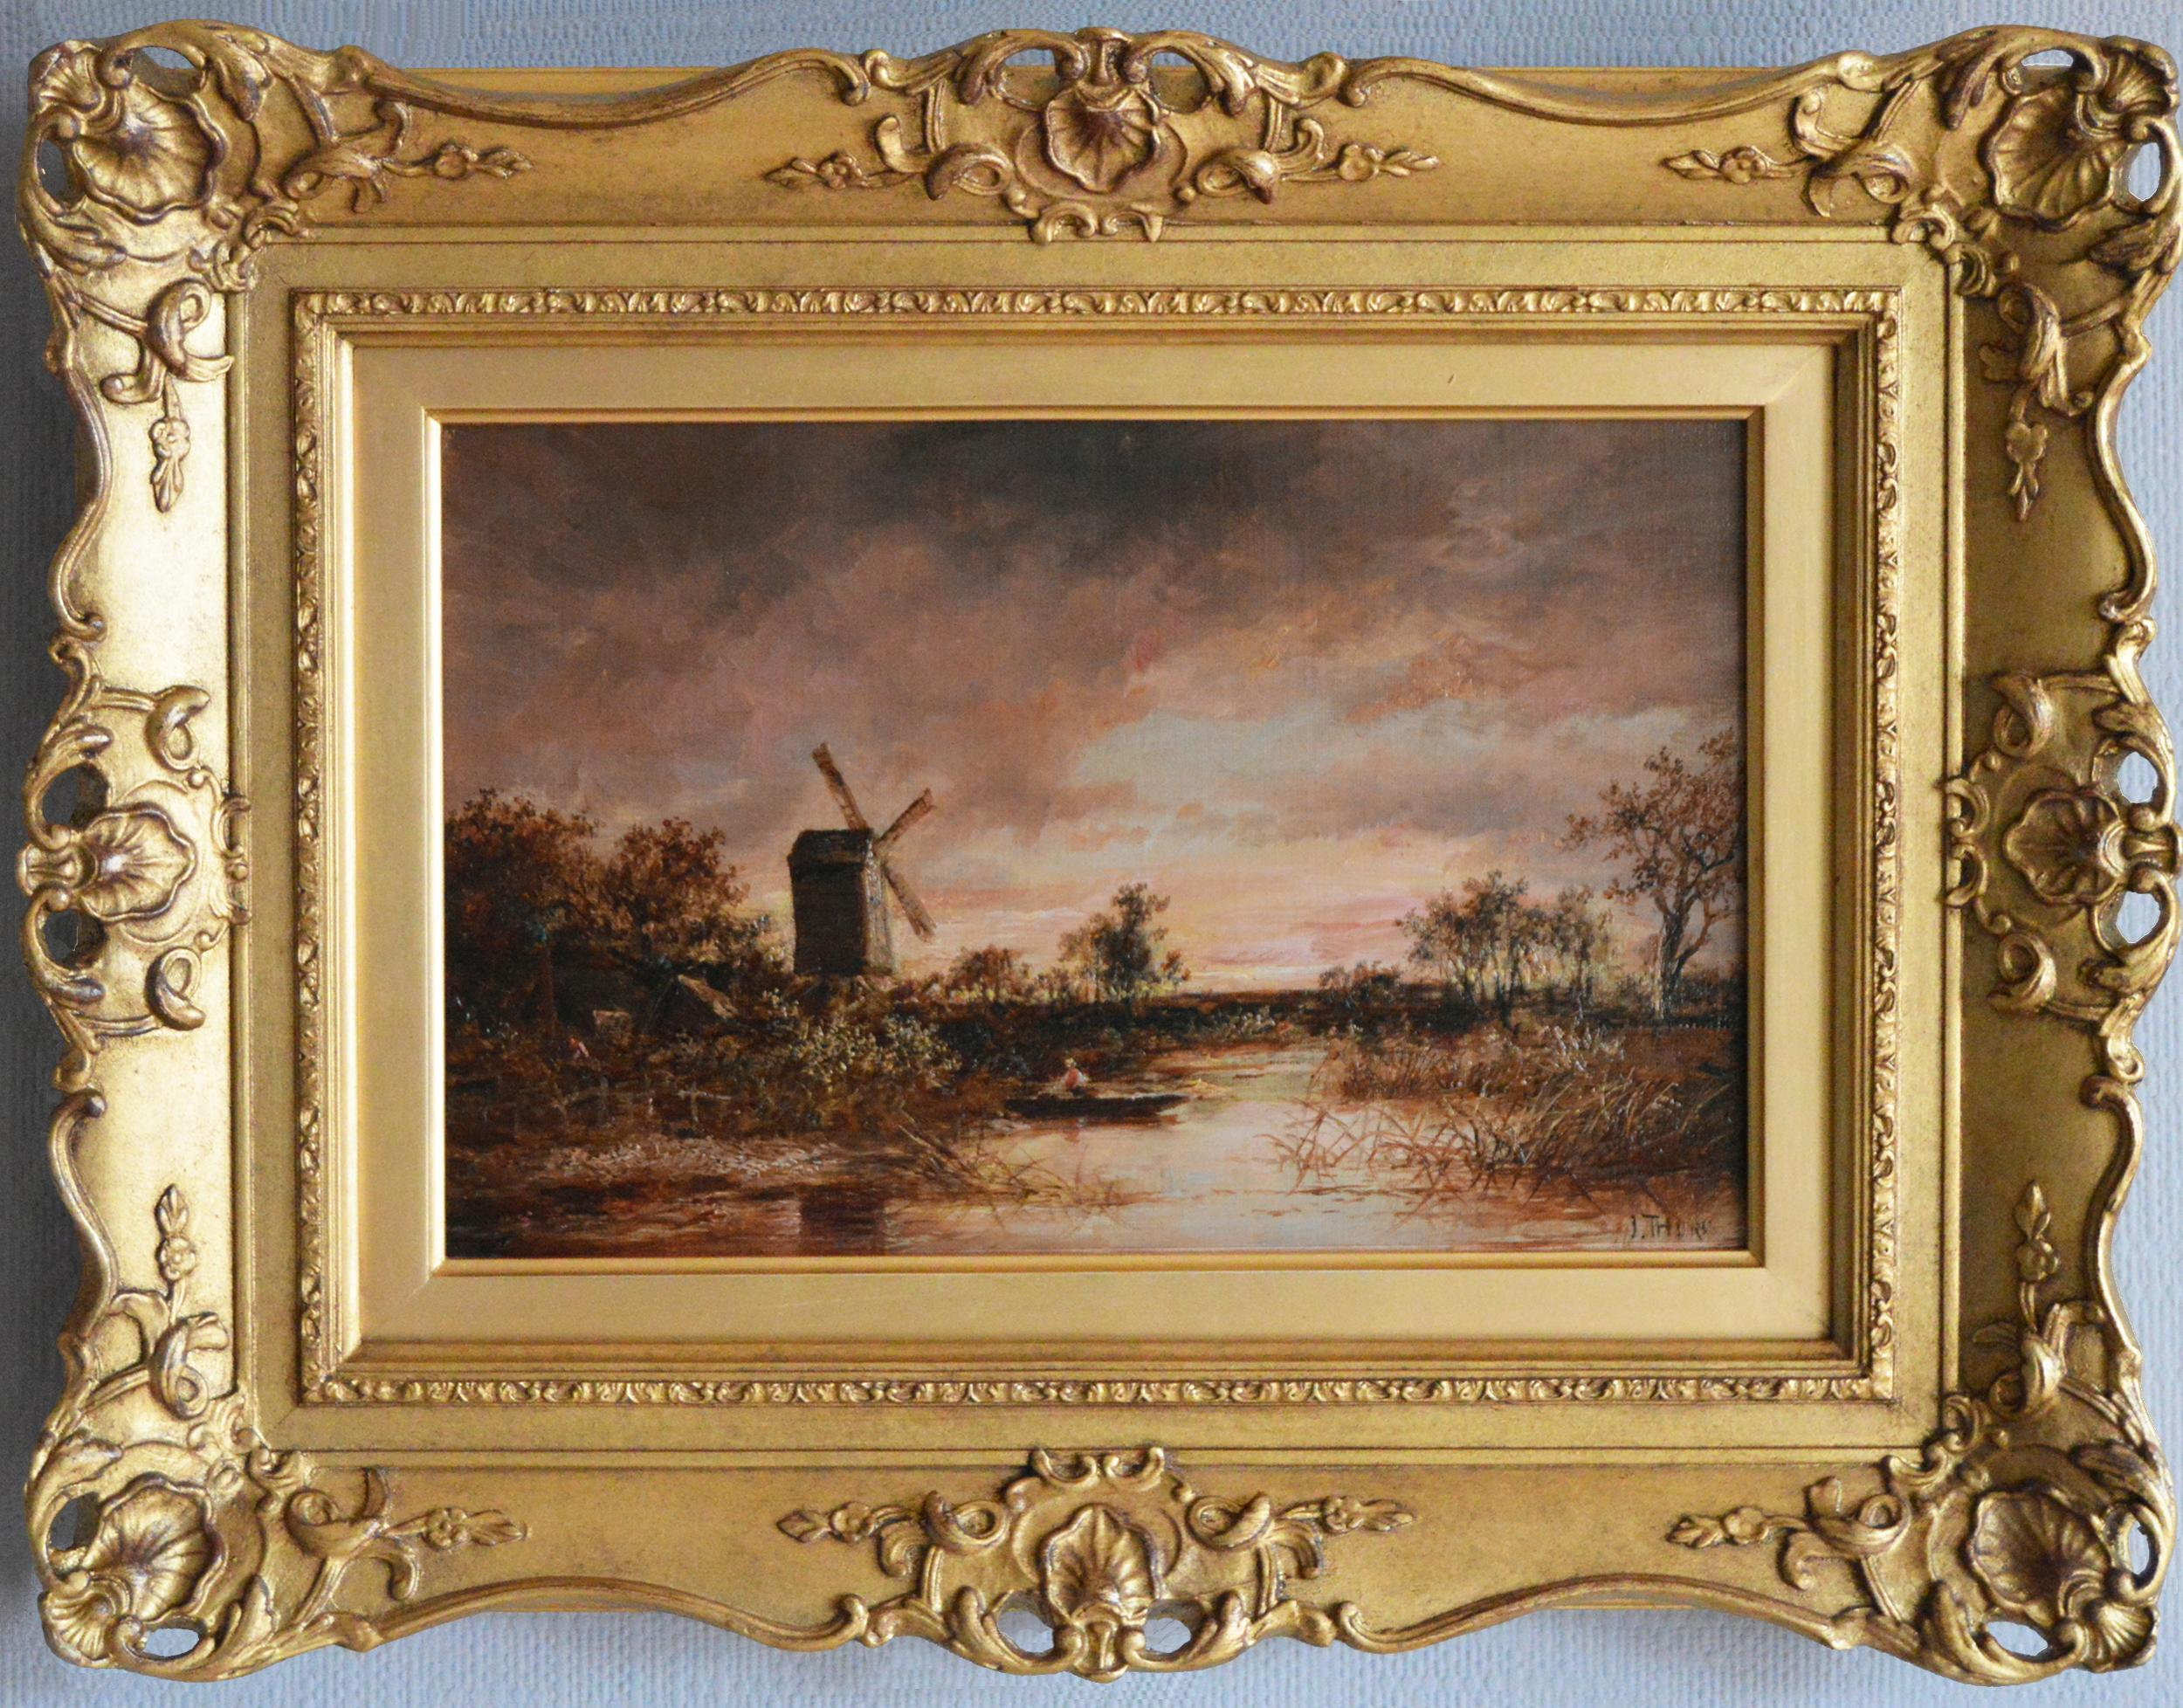 19th Century landscape oil painting of a windmill by a river